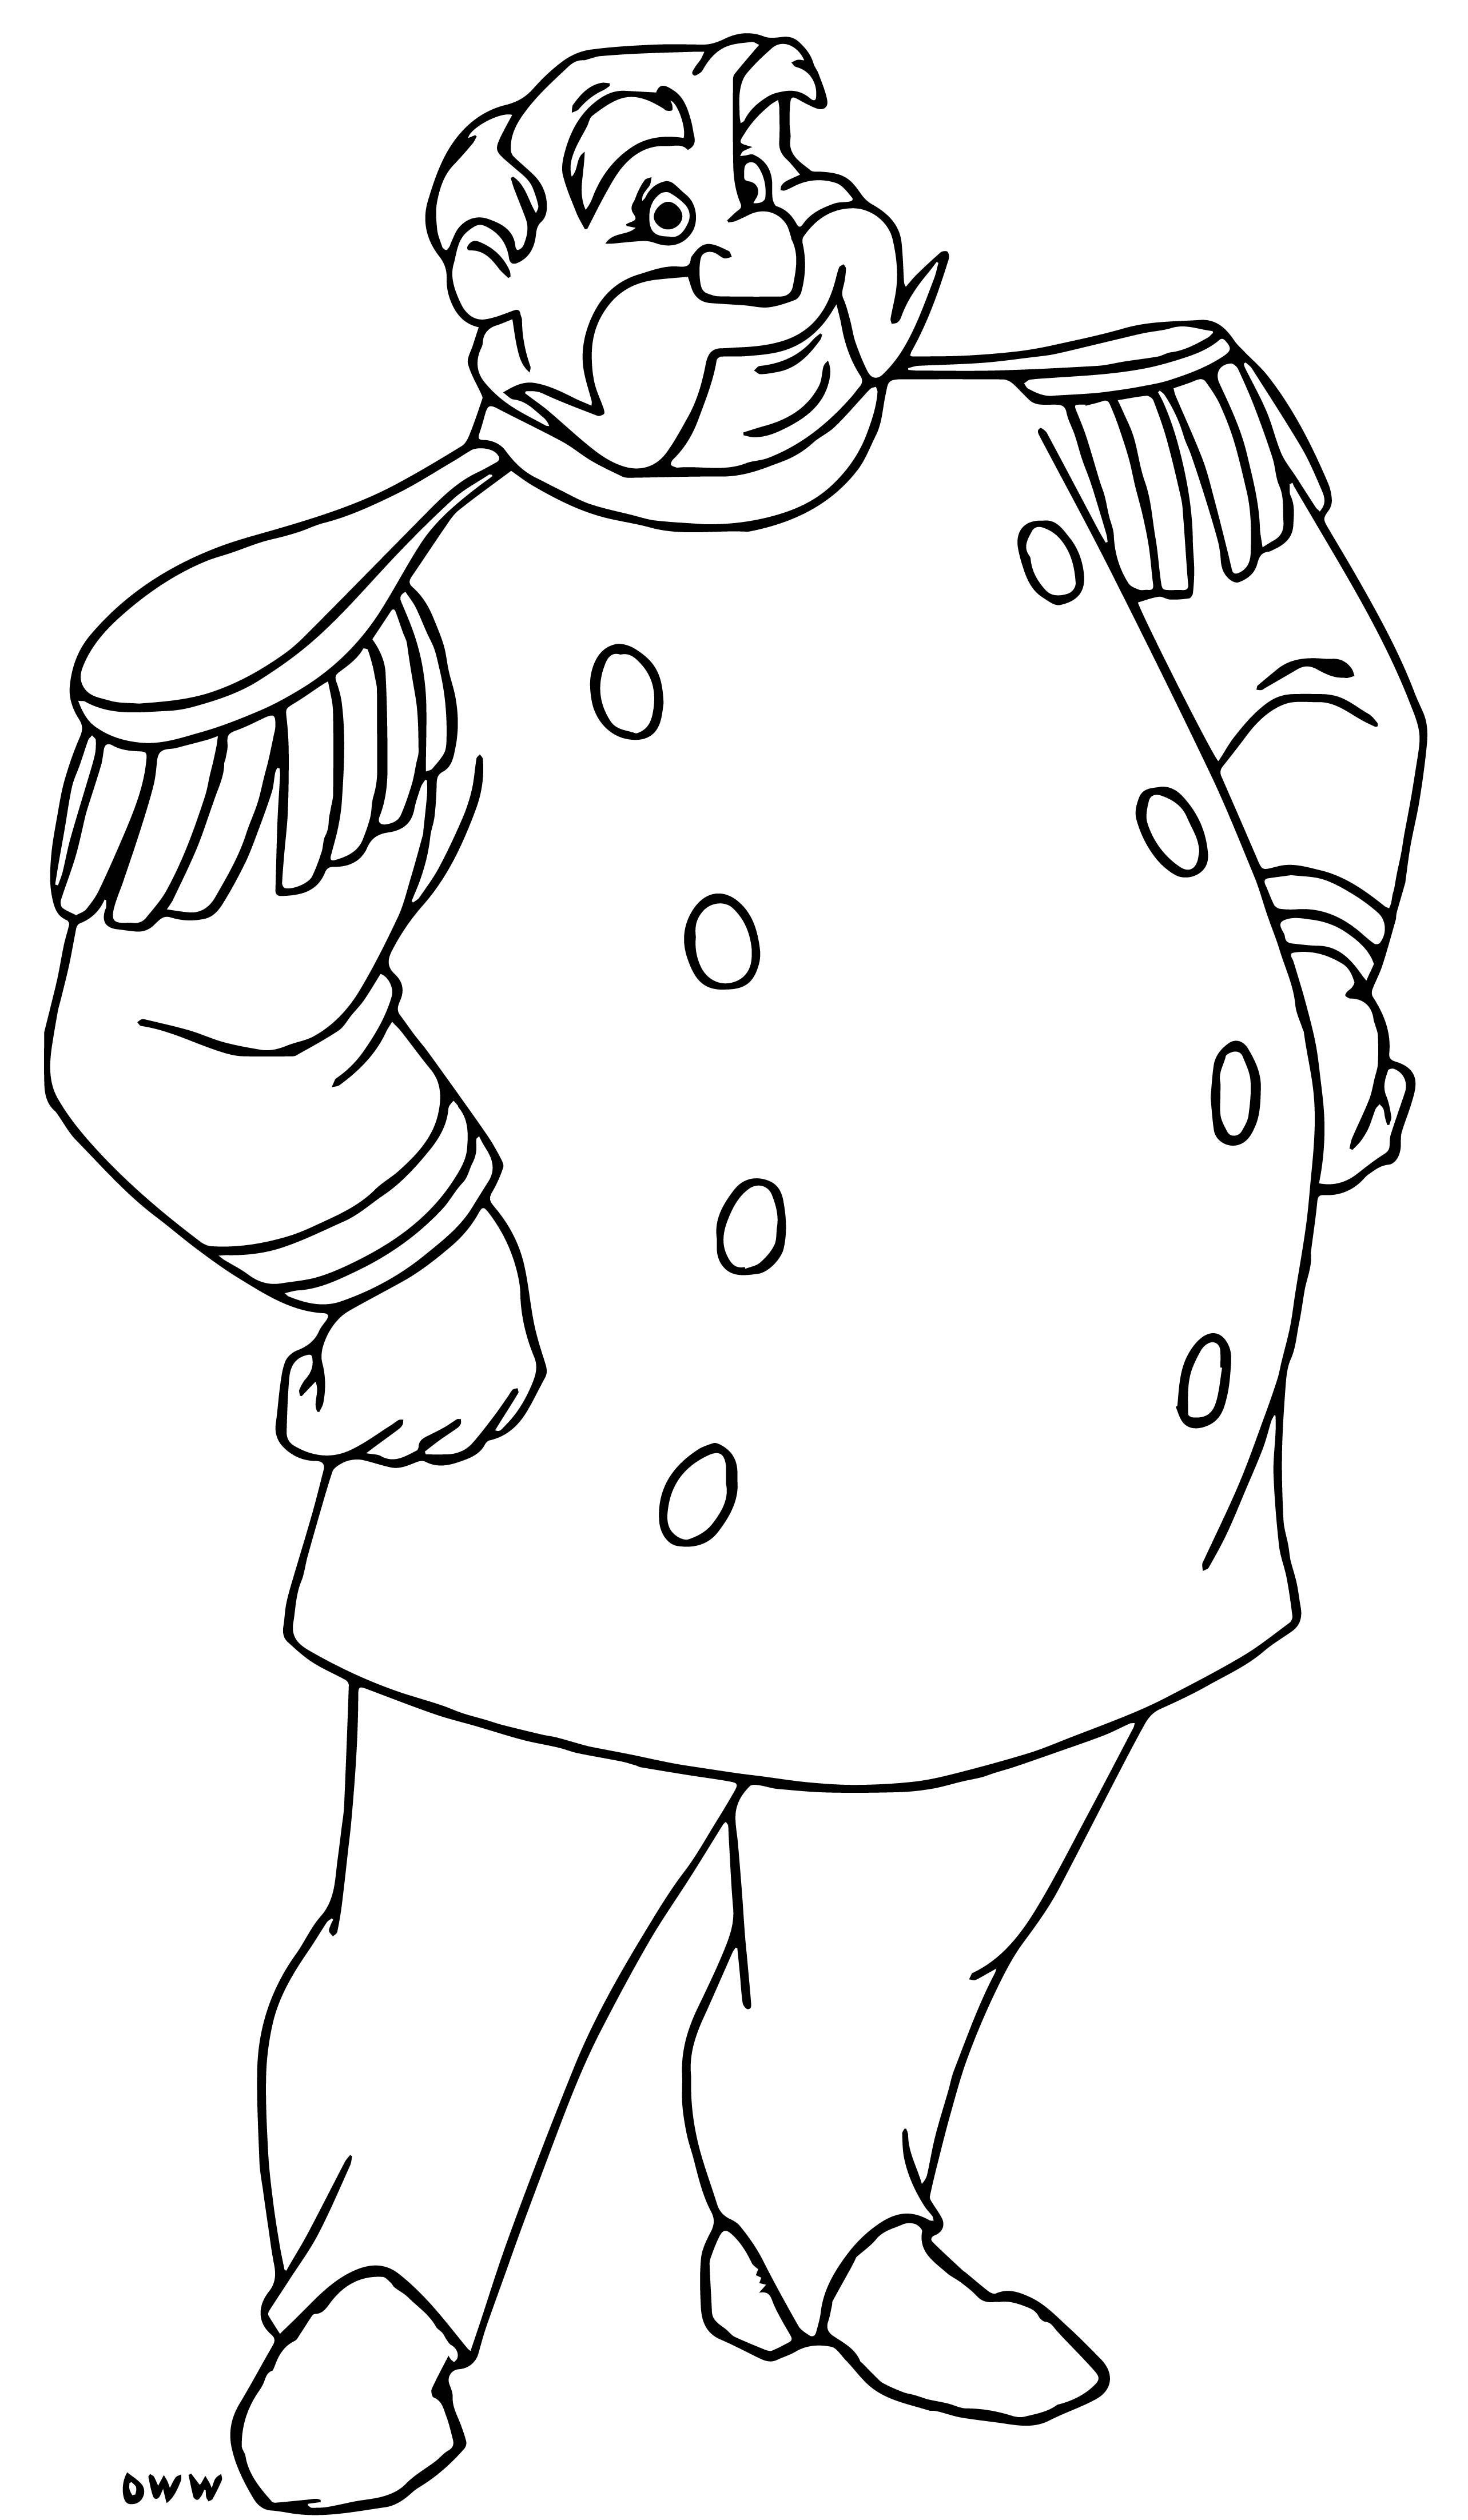 King 5 Coloring Page